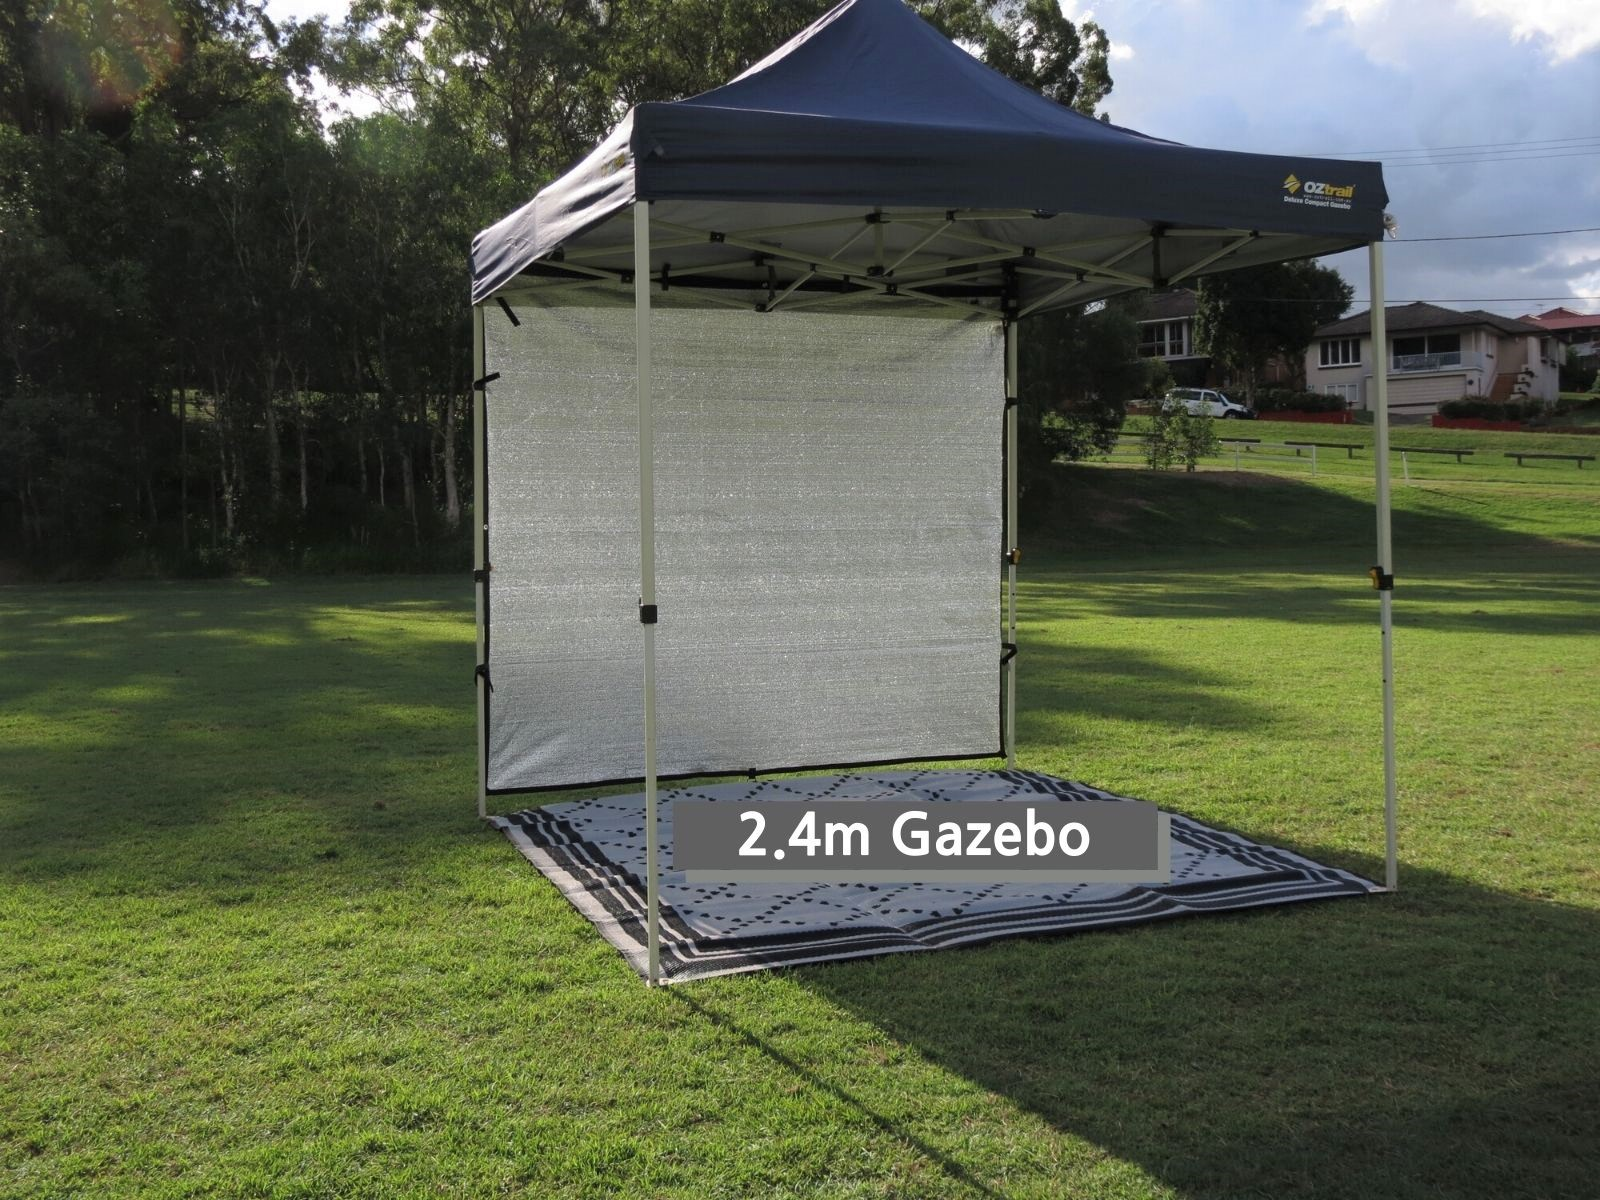 2.4m x 2m Gazebo Cool shade wall that reduces heat and is lightweight